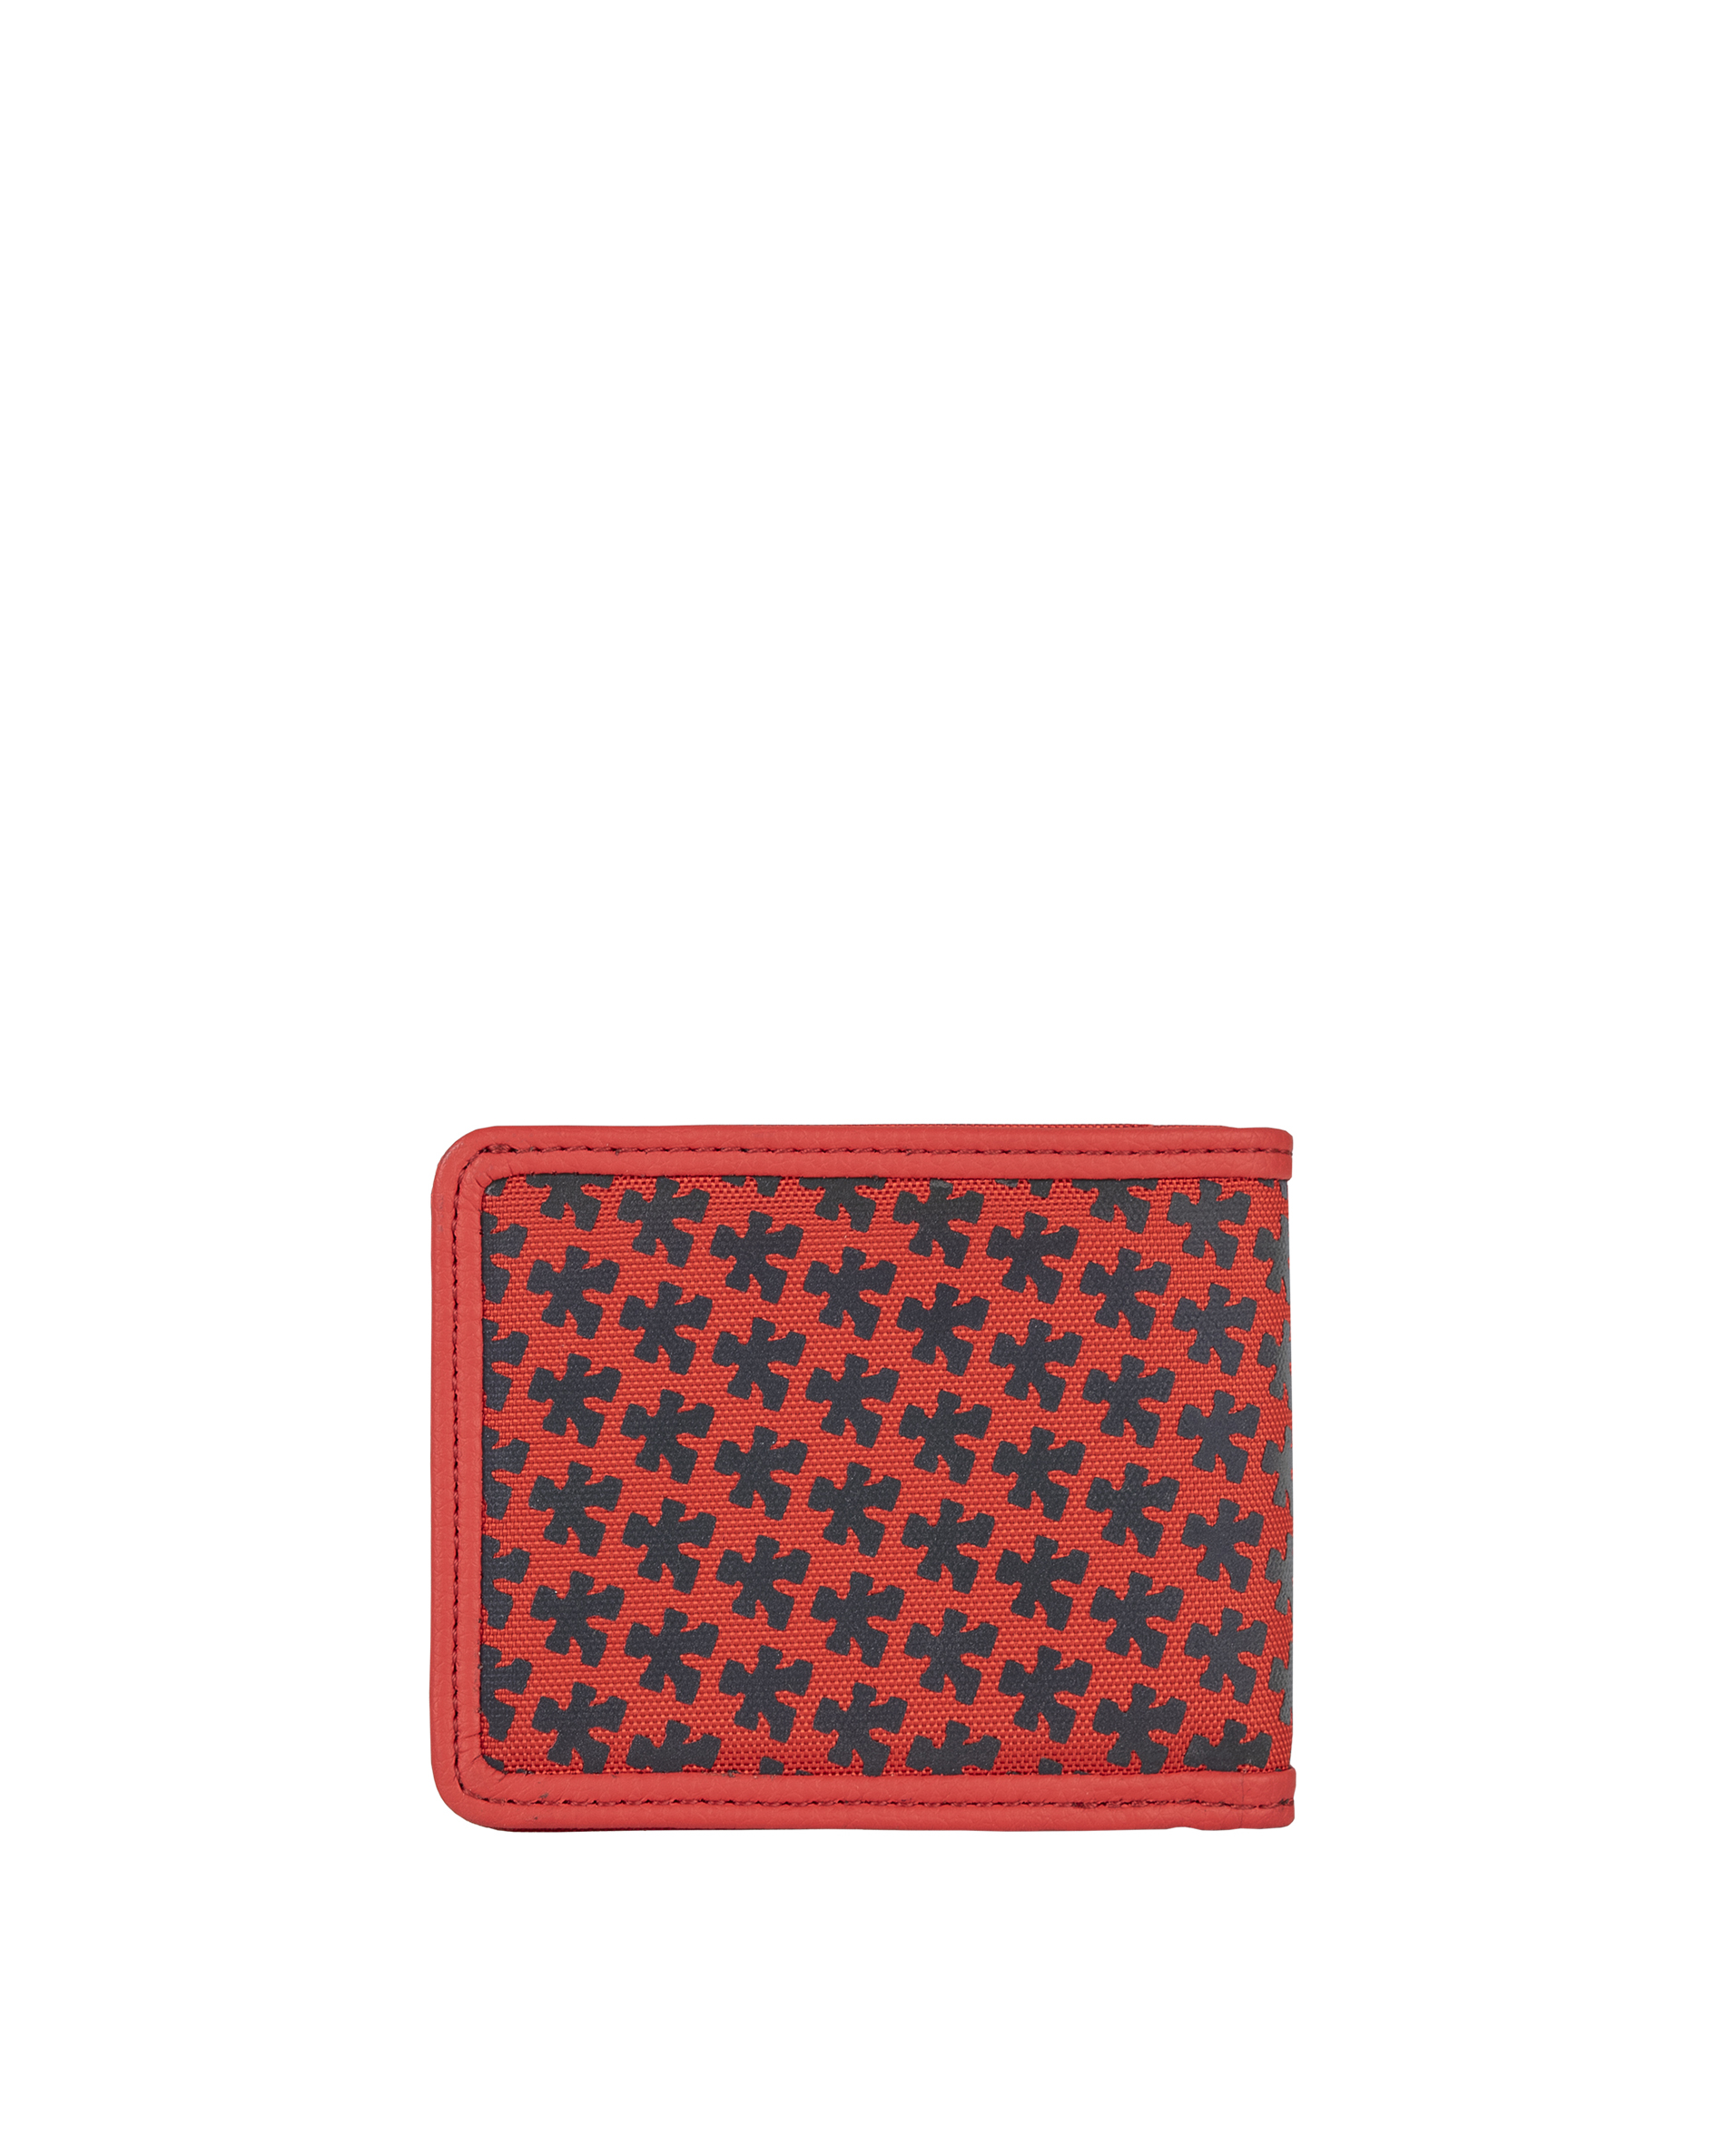 DirtyCoins Wally Wallet - Red